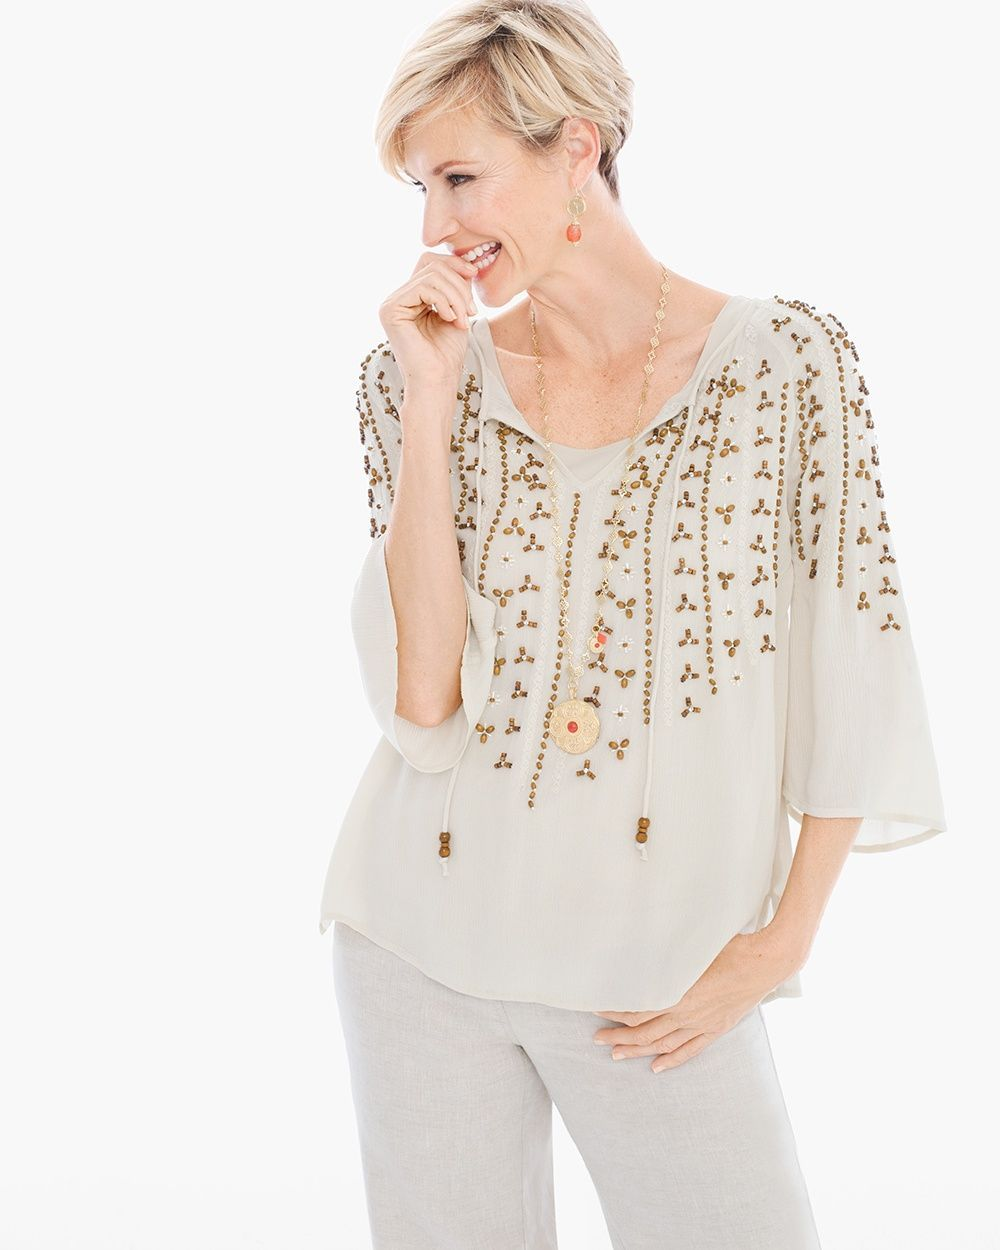 a443e296844 Chico's Women's Beaded Embroidered Peasant Top, Chantilly Cream, Size: 4  (20/22 XXL)